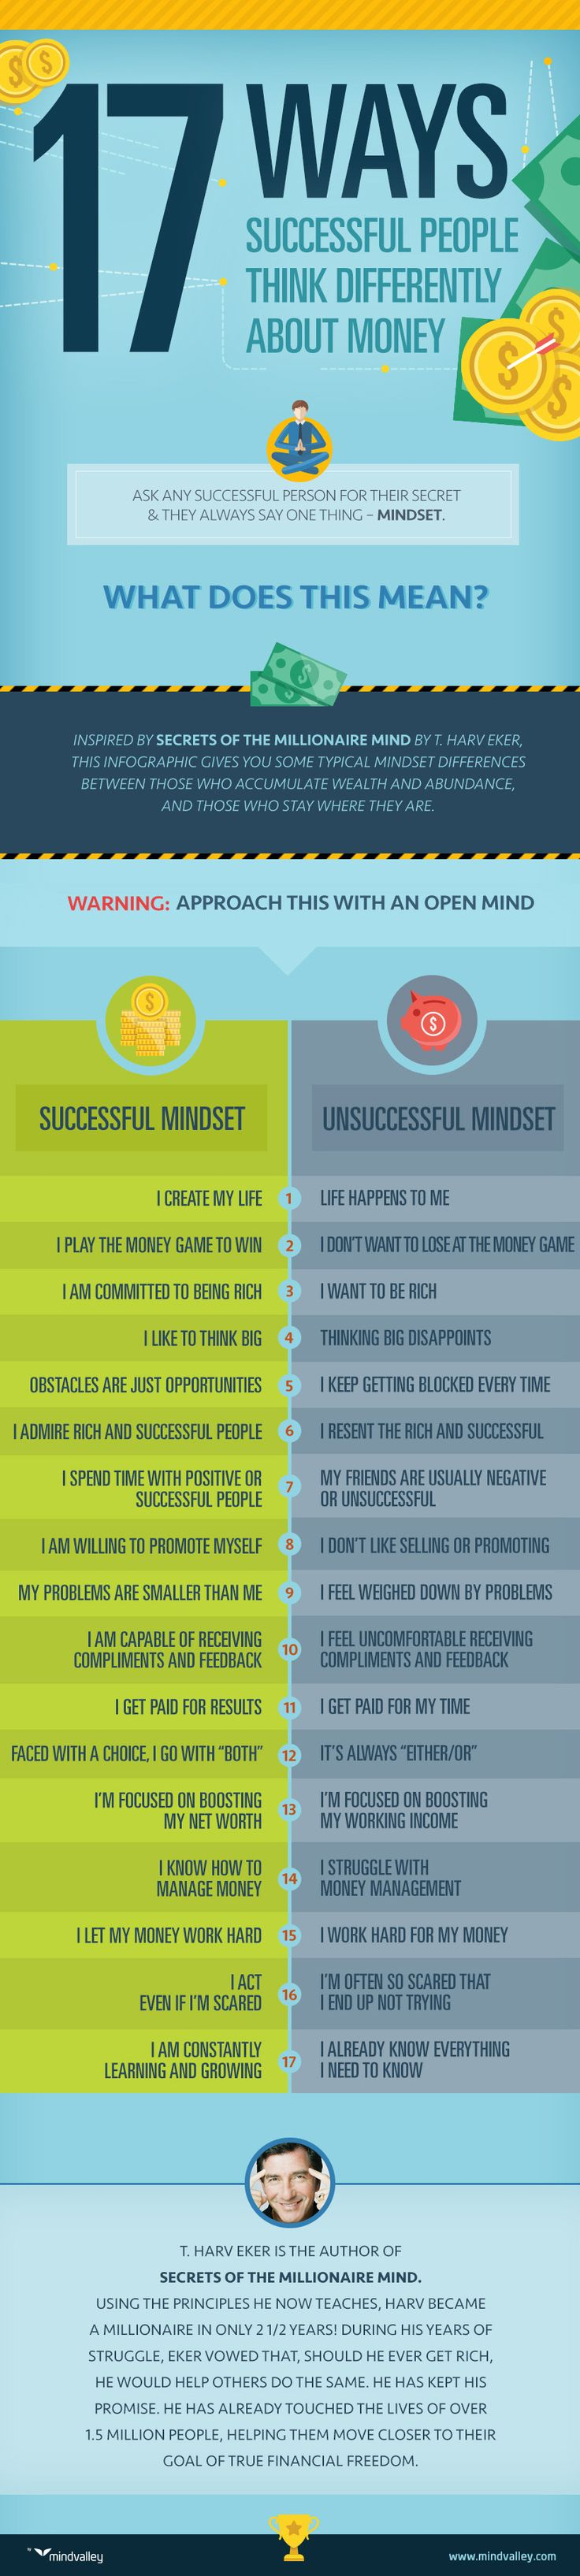 17 Ways Successful People Think Differently About Money #infographic #business #Money